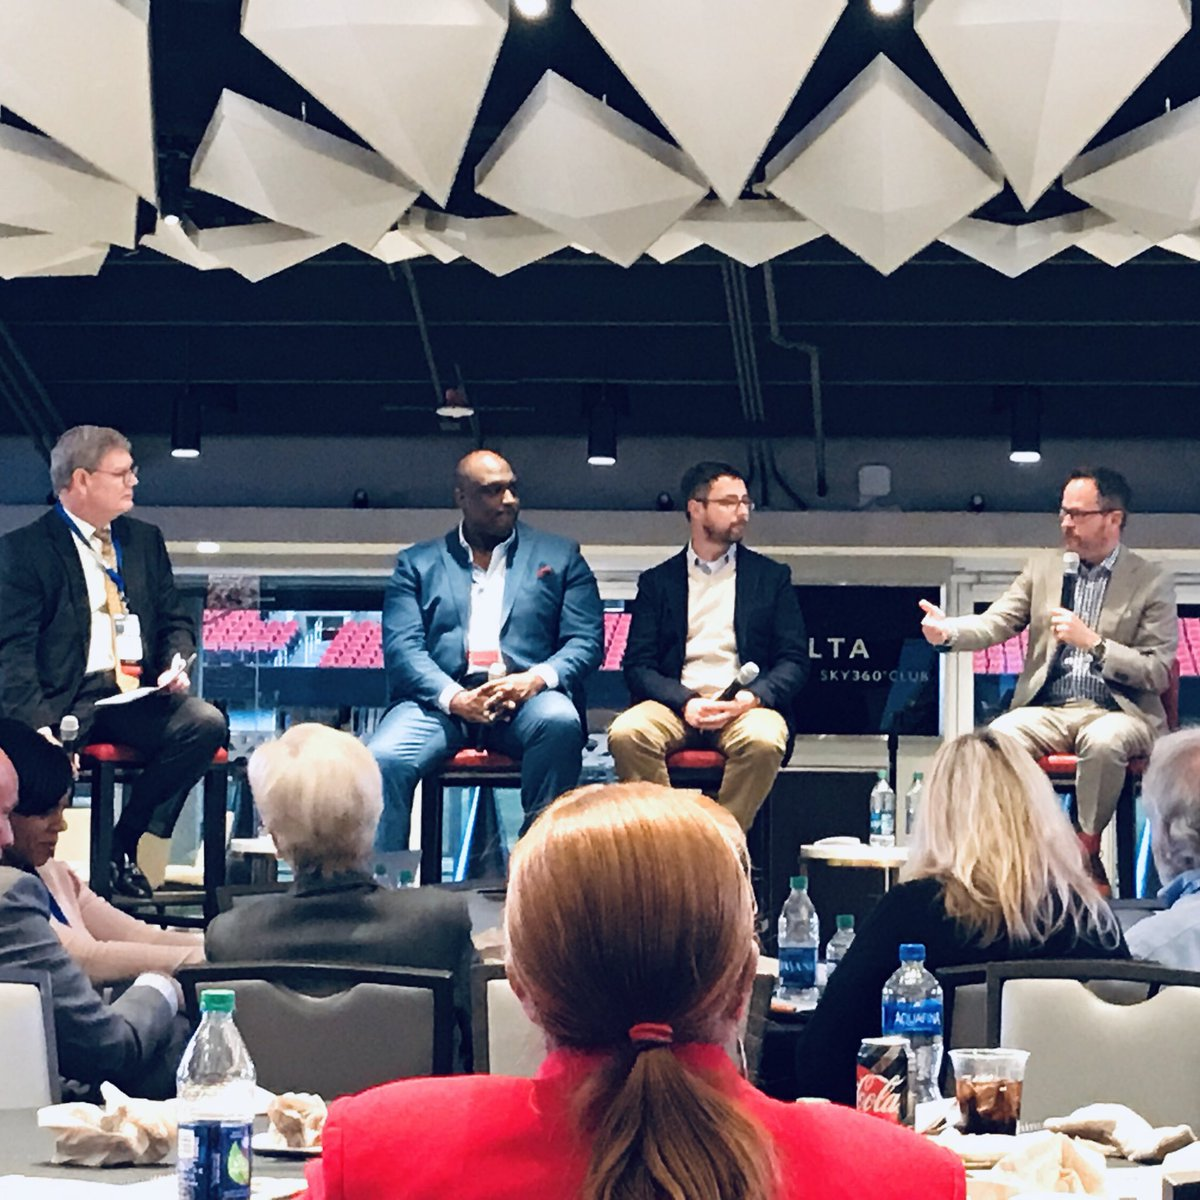 Thanks to @GAOpportunity for having me & @rodney_bullard & @GregBeadles to discuss future of economic mobility.  Very proud to have @ChickfilA & @MBStadium as part of @GAChamber. Truly great corporate leadership. #gapol